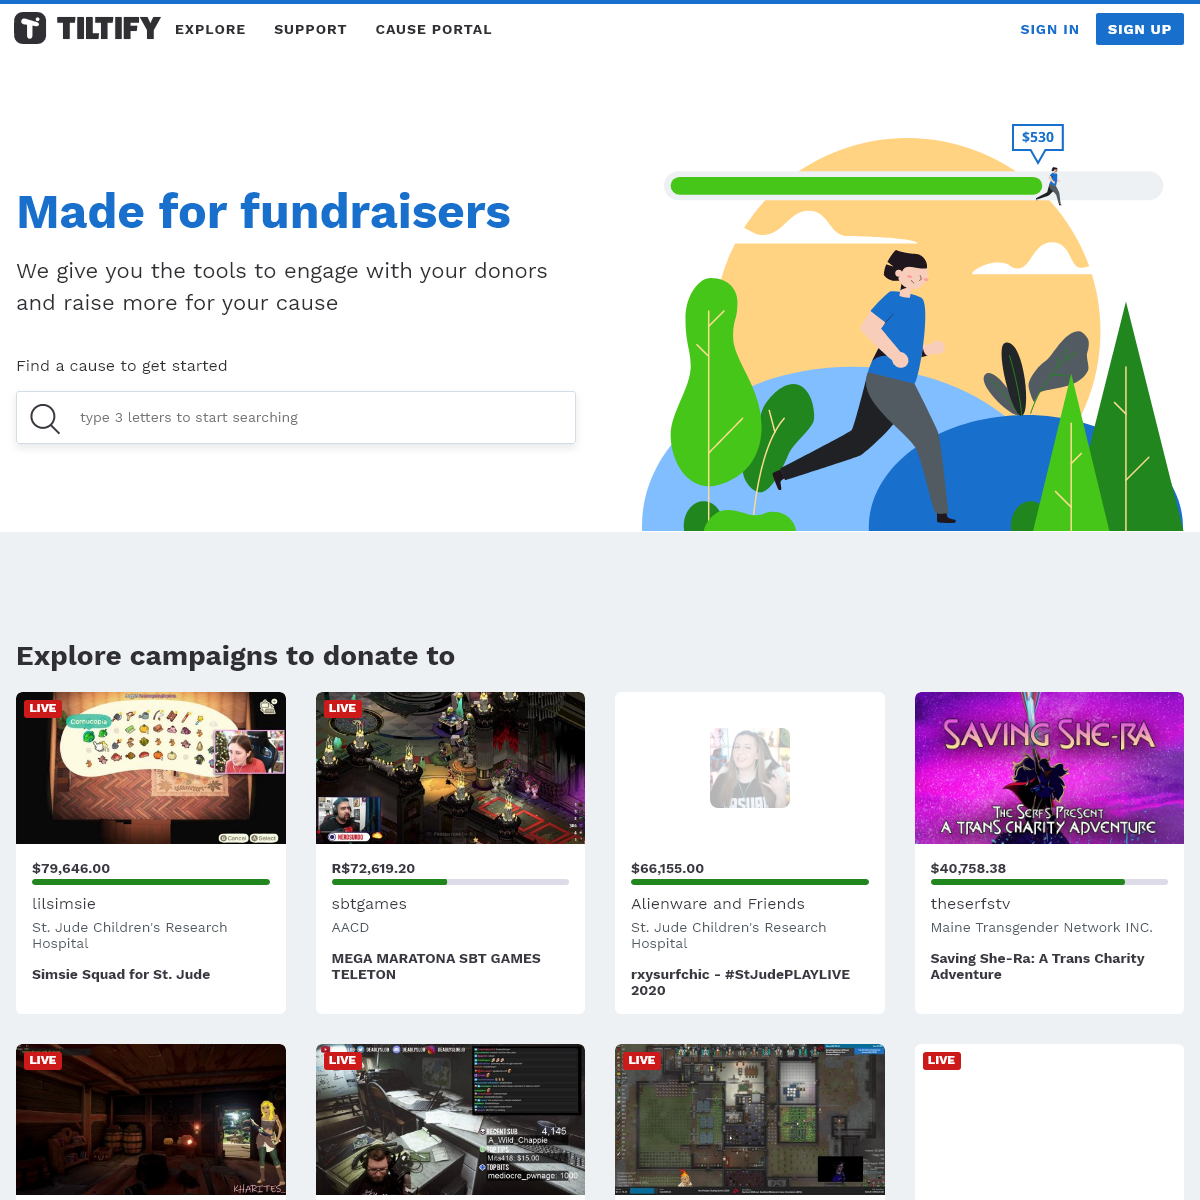 Tiltify - Made for Fundraisers